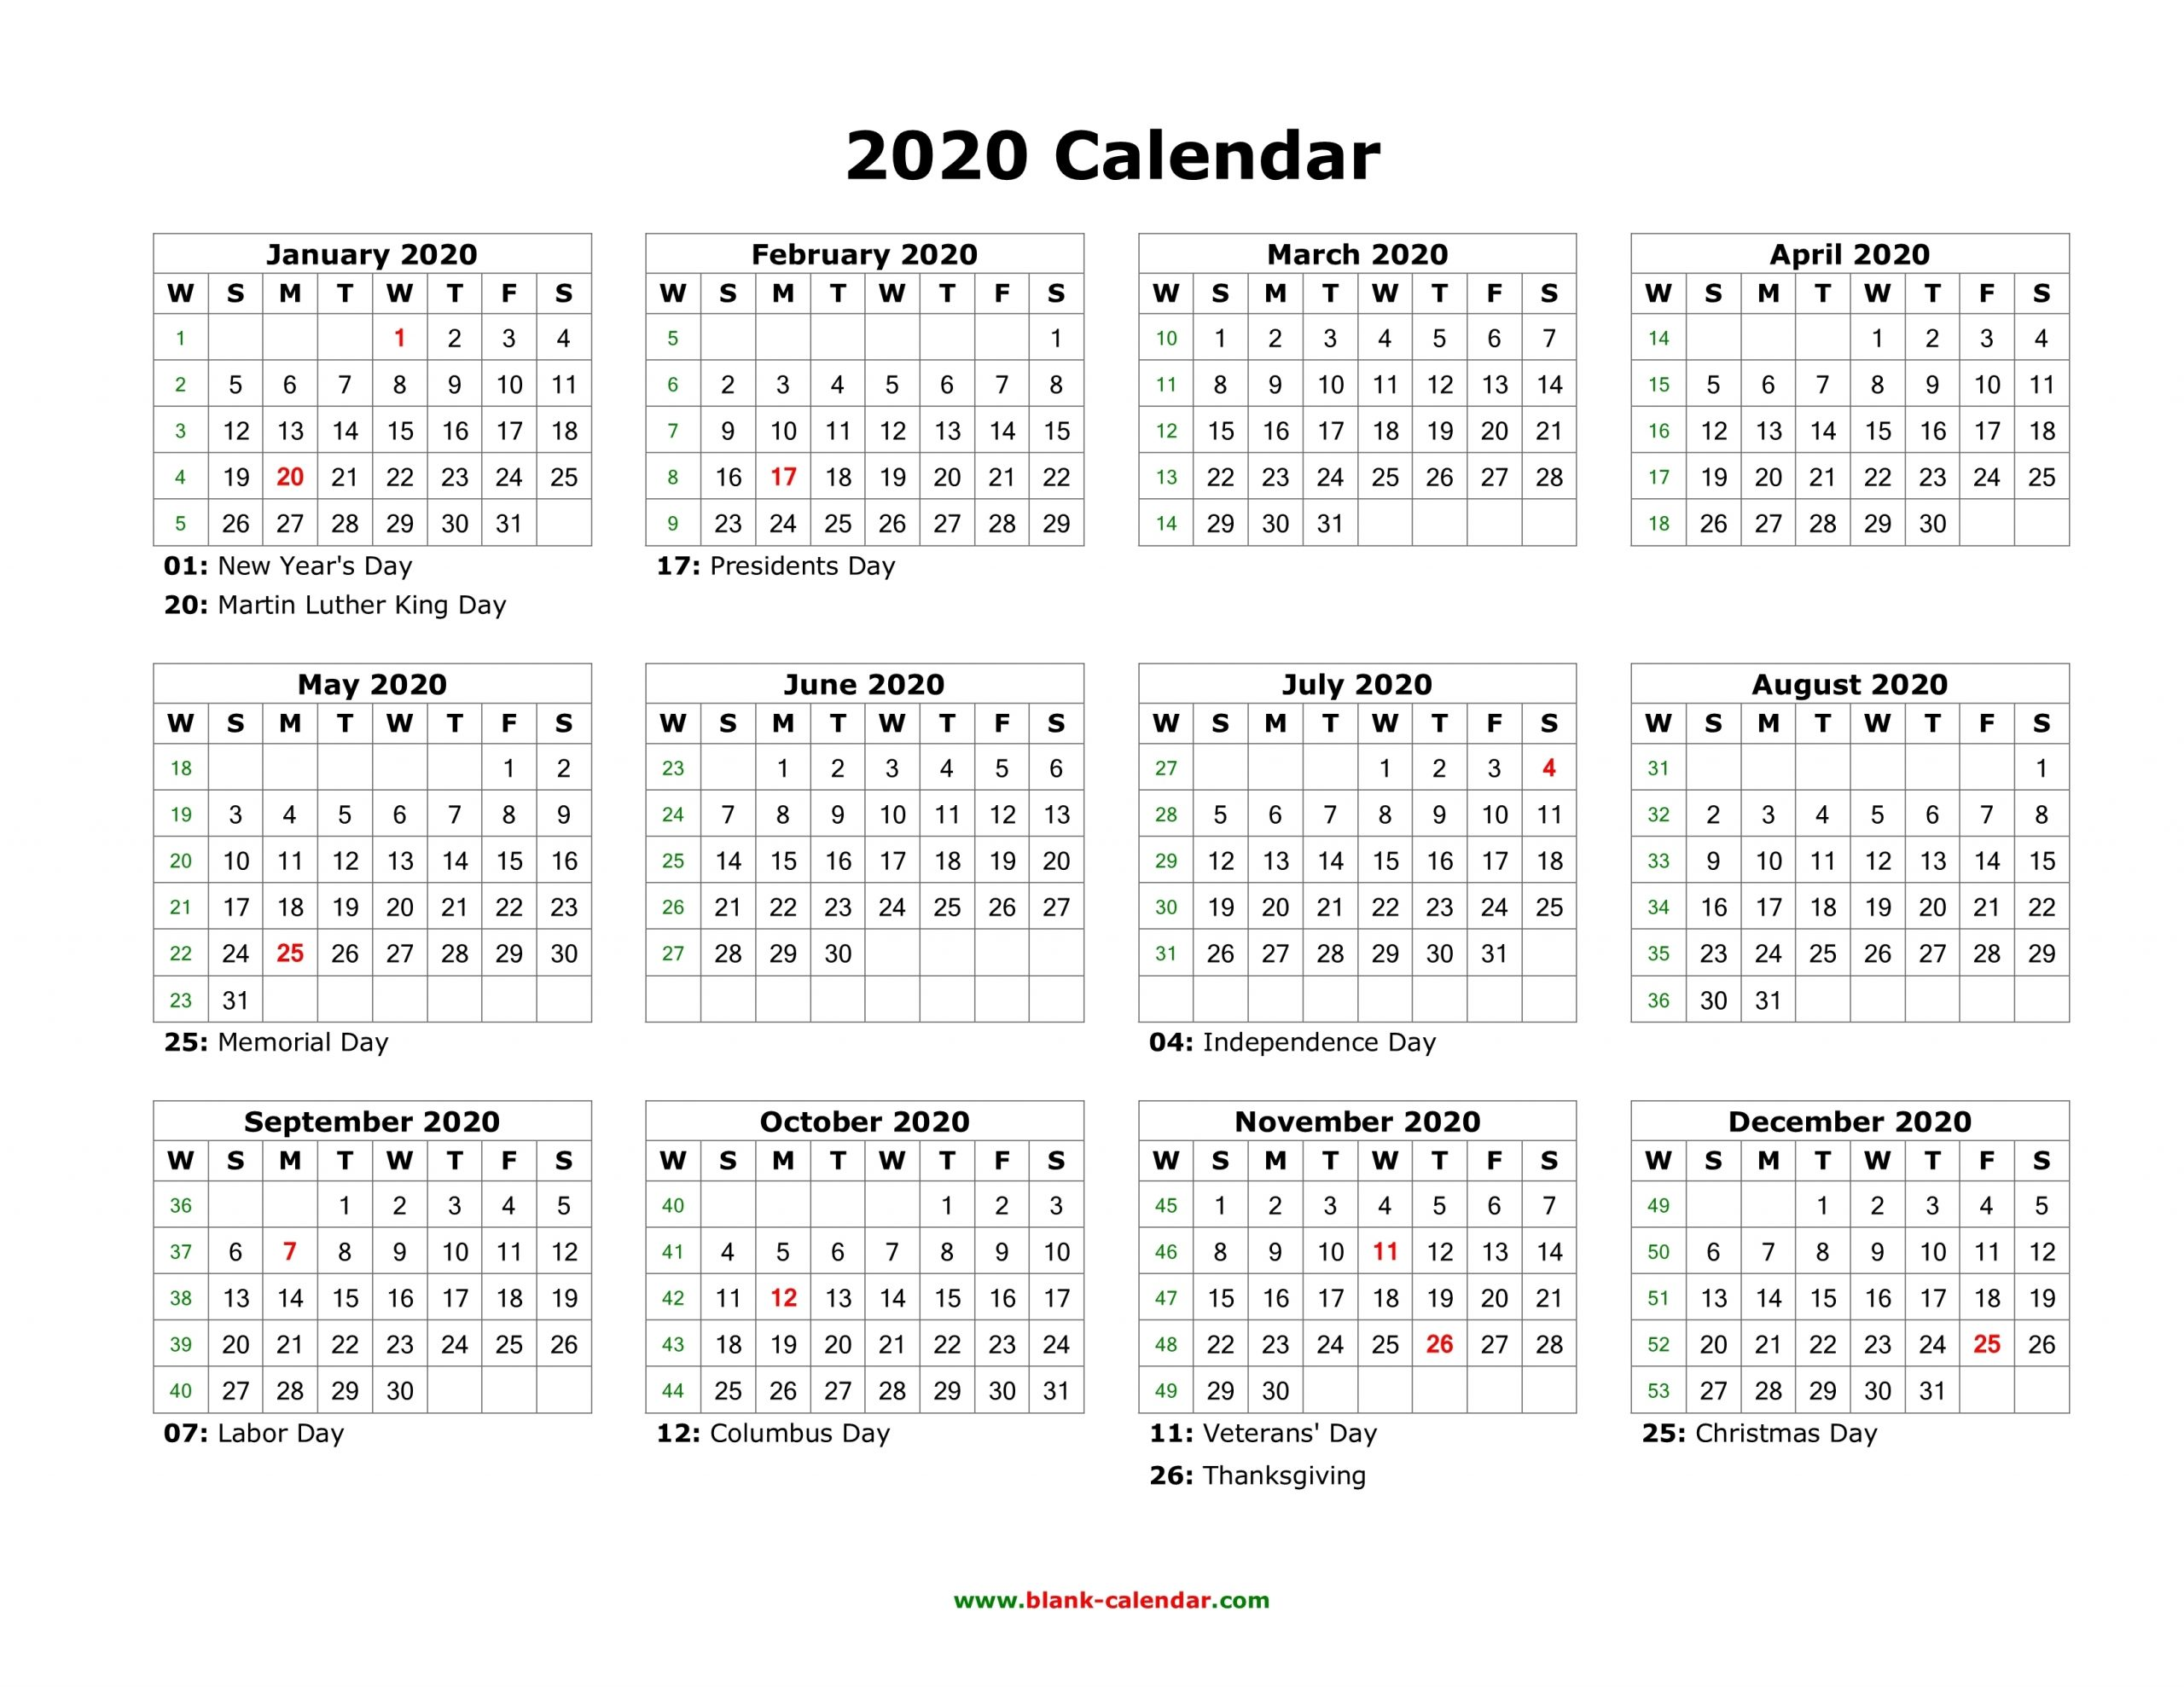 Blank Calendar 2020 | Free Download Calendar Templates for Year Calendar 2020 With Space To Write Int